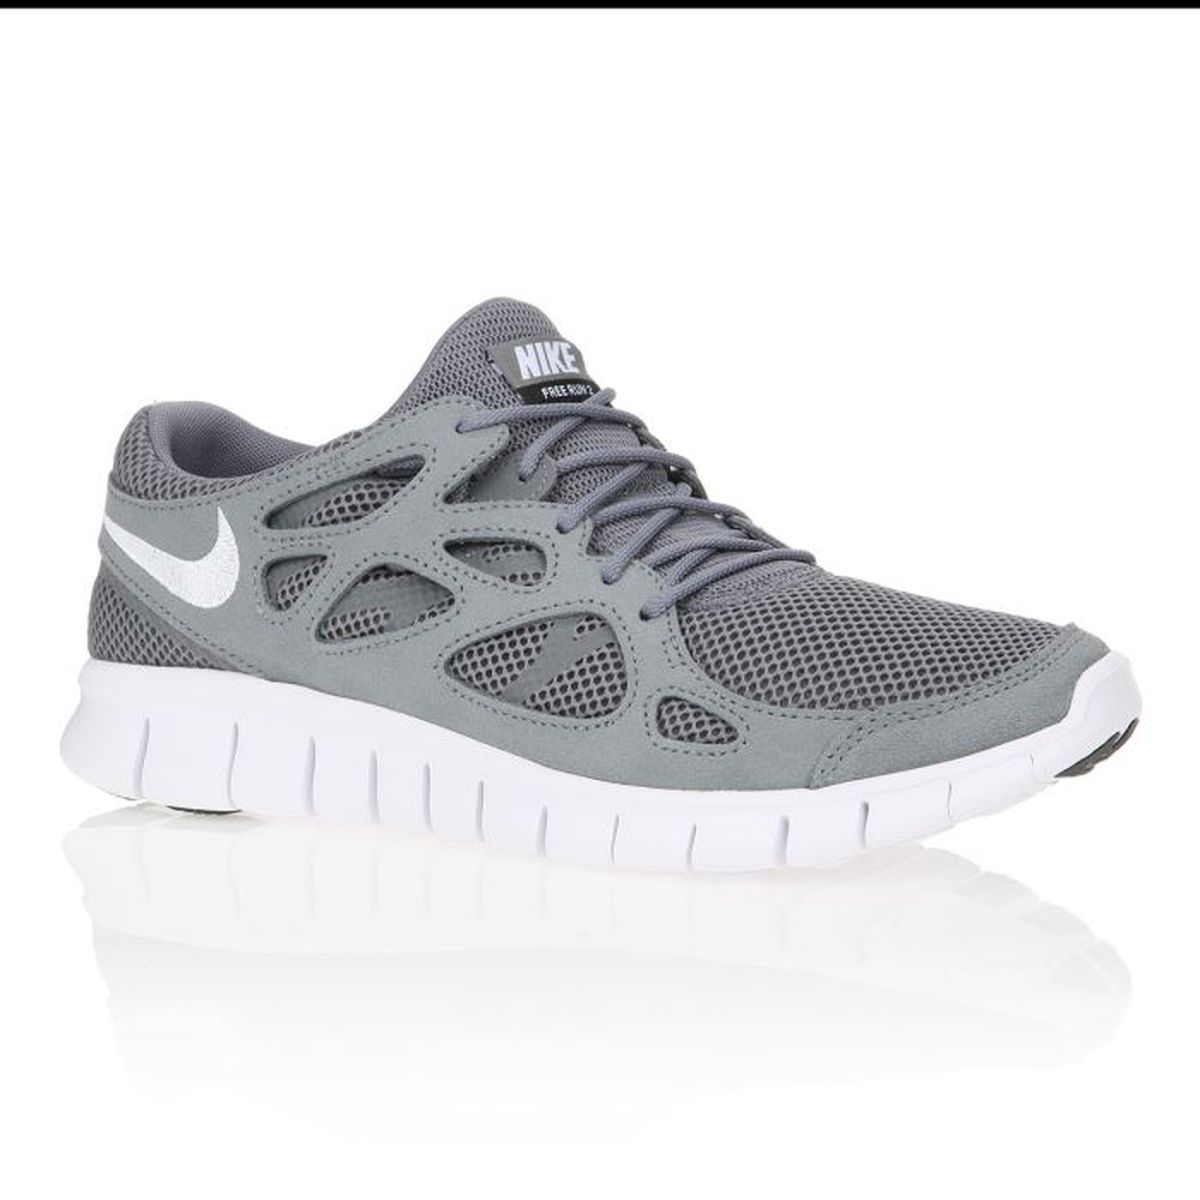 nike baskets free run 2 homme homme gris achat vente nike baskets free run 2 homme homme pas. Black Bedroom Furniture Sets. Home Design Ideas